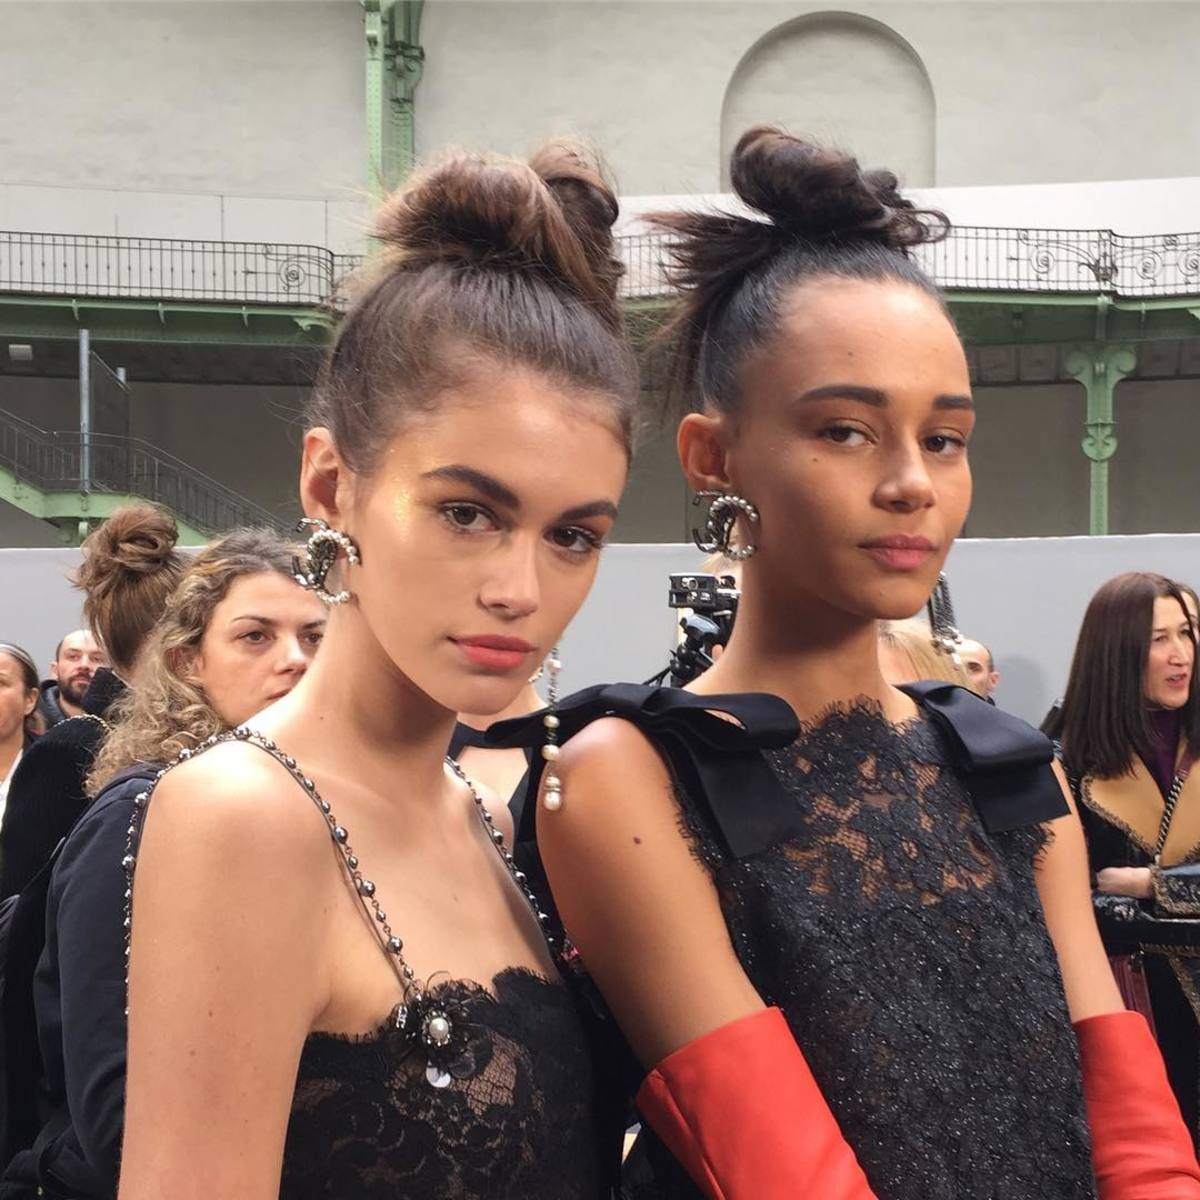 Kaia Gerber and Binx Walton backtage at Chanel's Fall 2018 show. Photo: @hairbysammcknight/Instagram